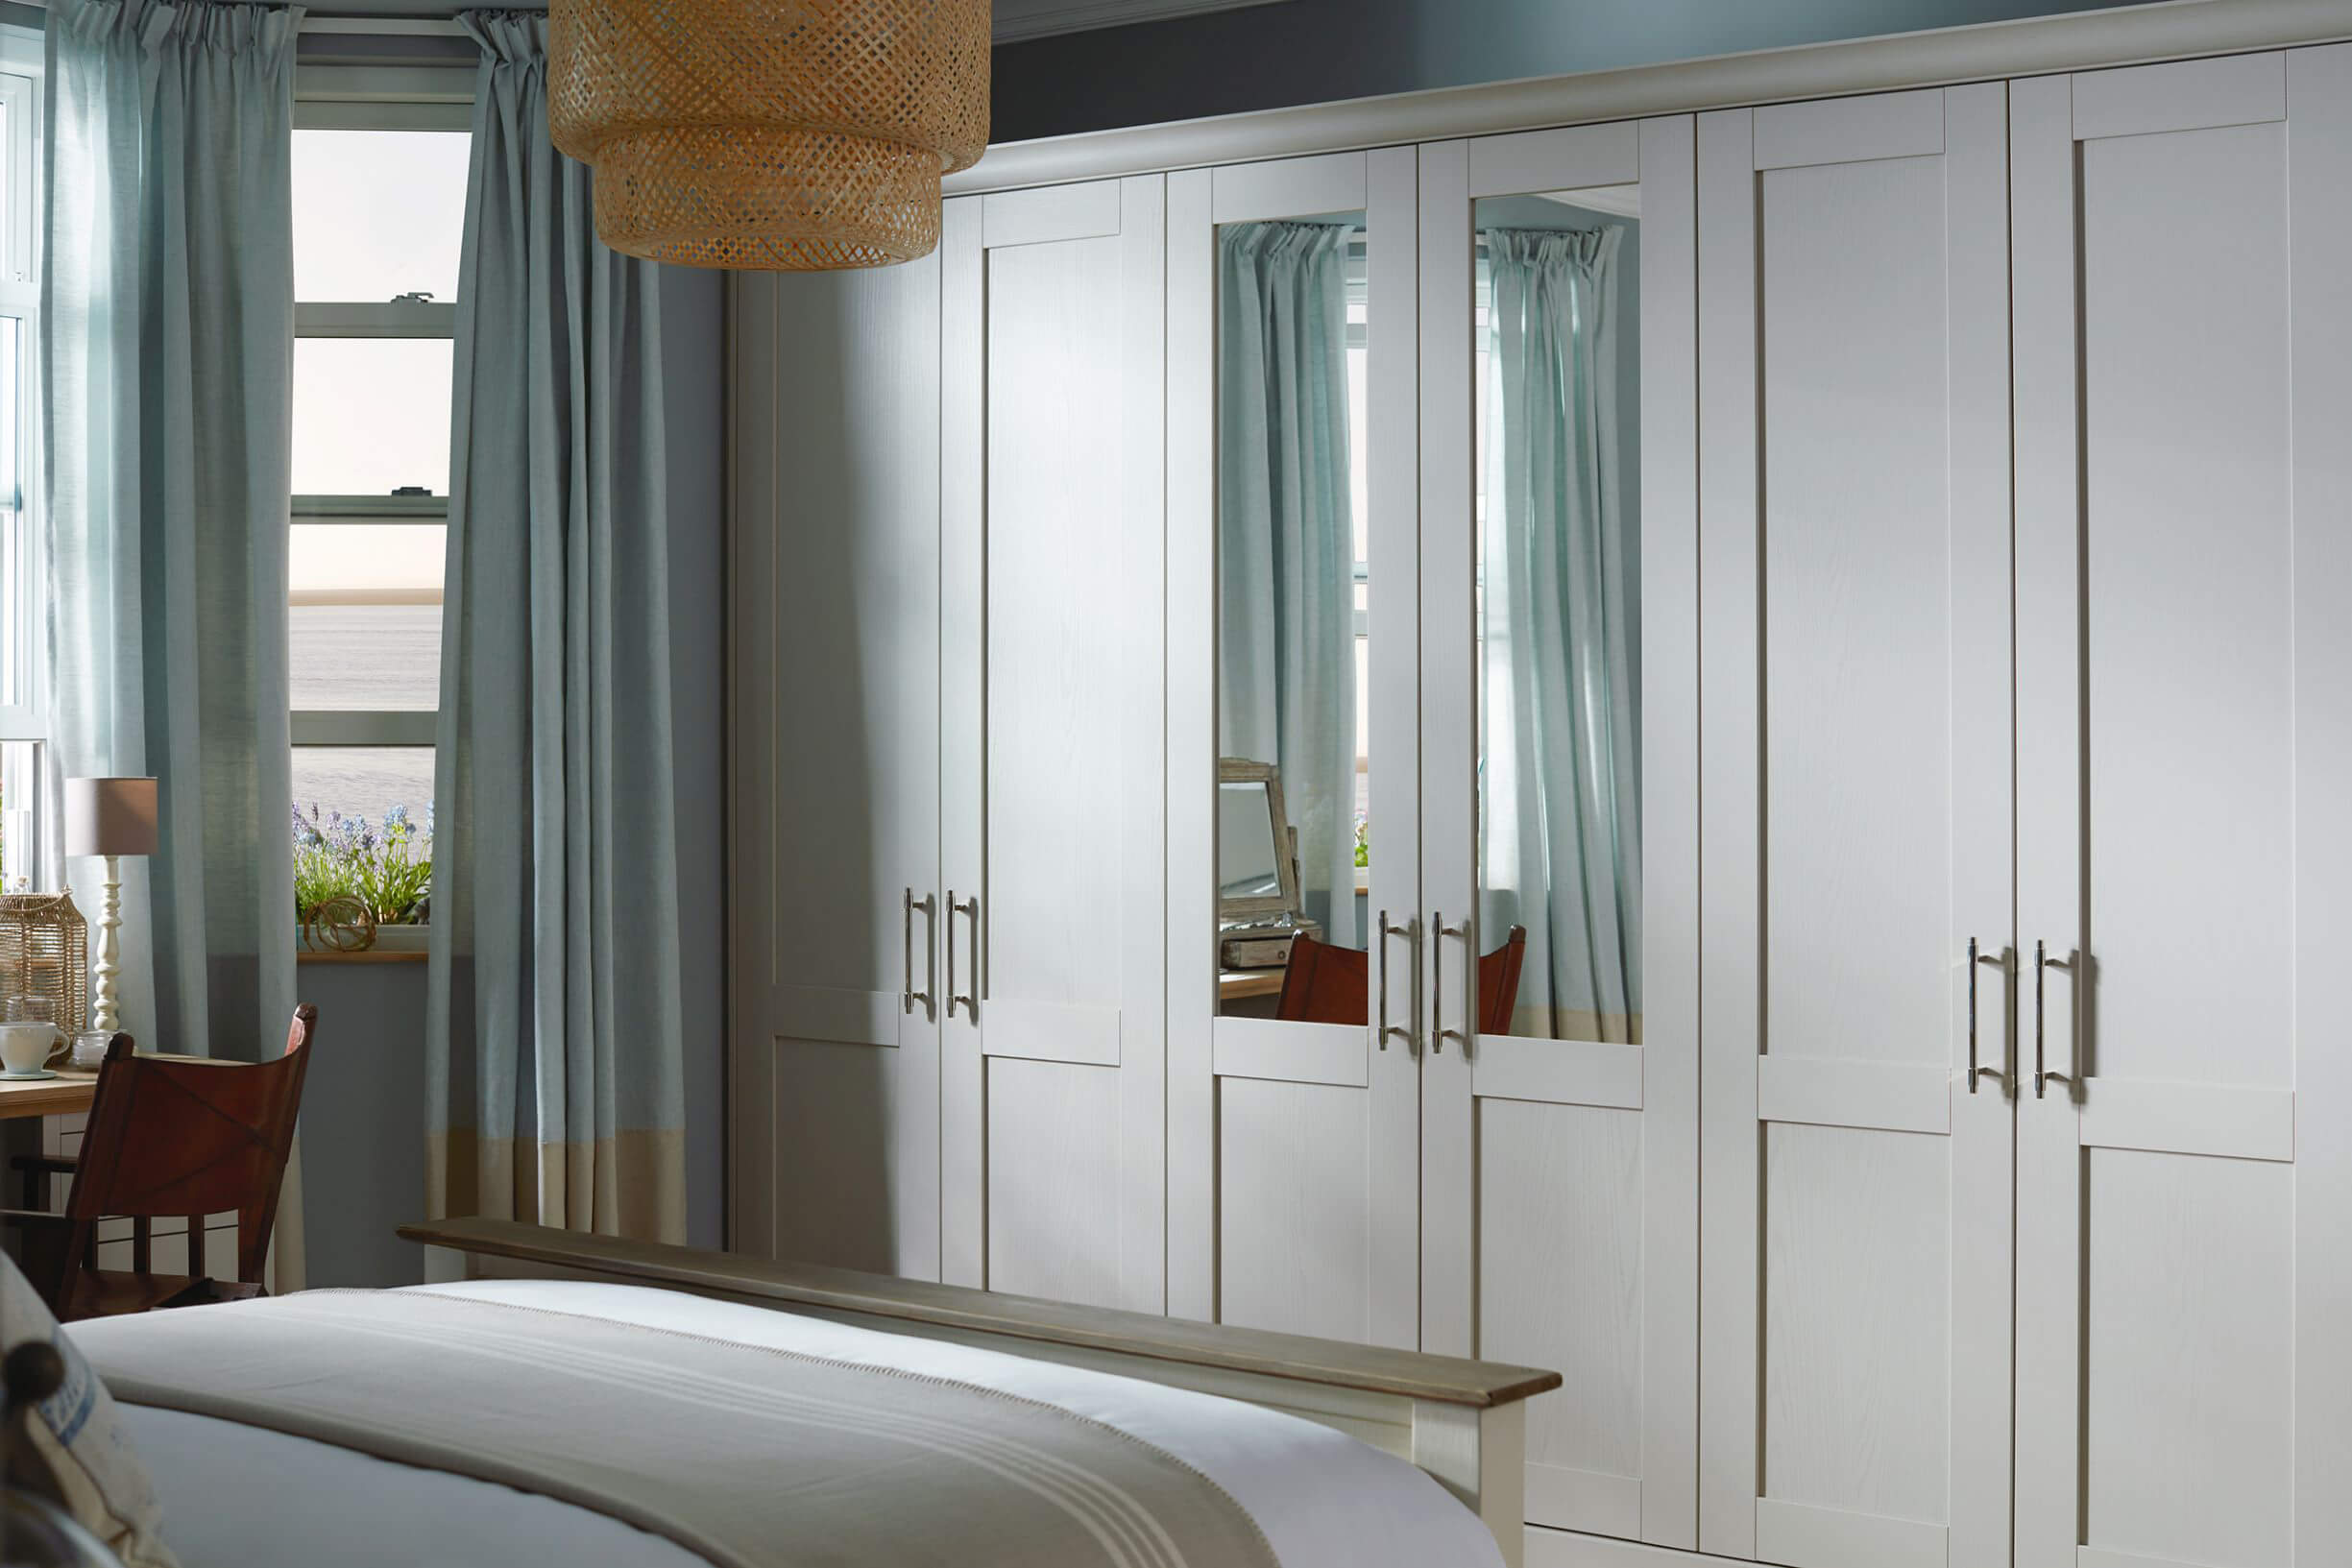 Kindred-Bedrooms-Origin-Gallery12